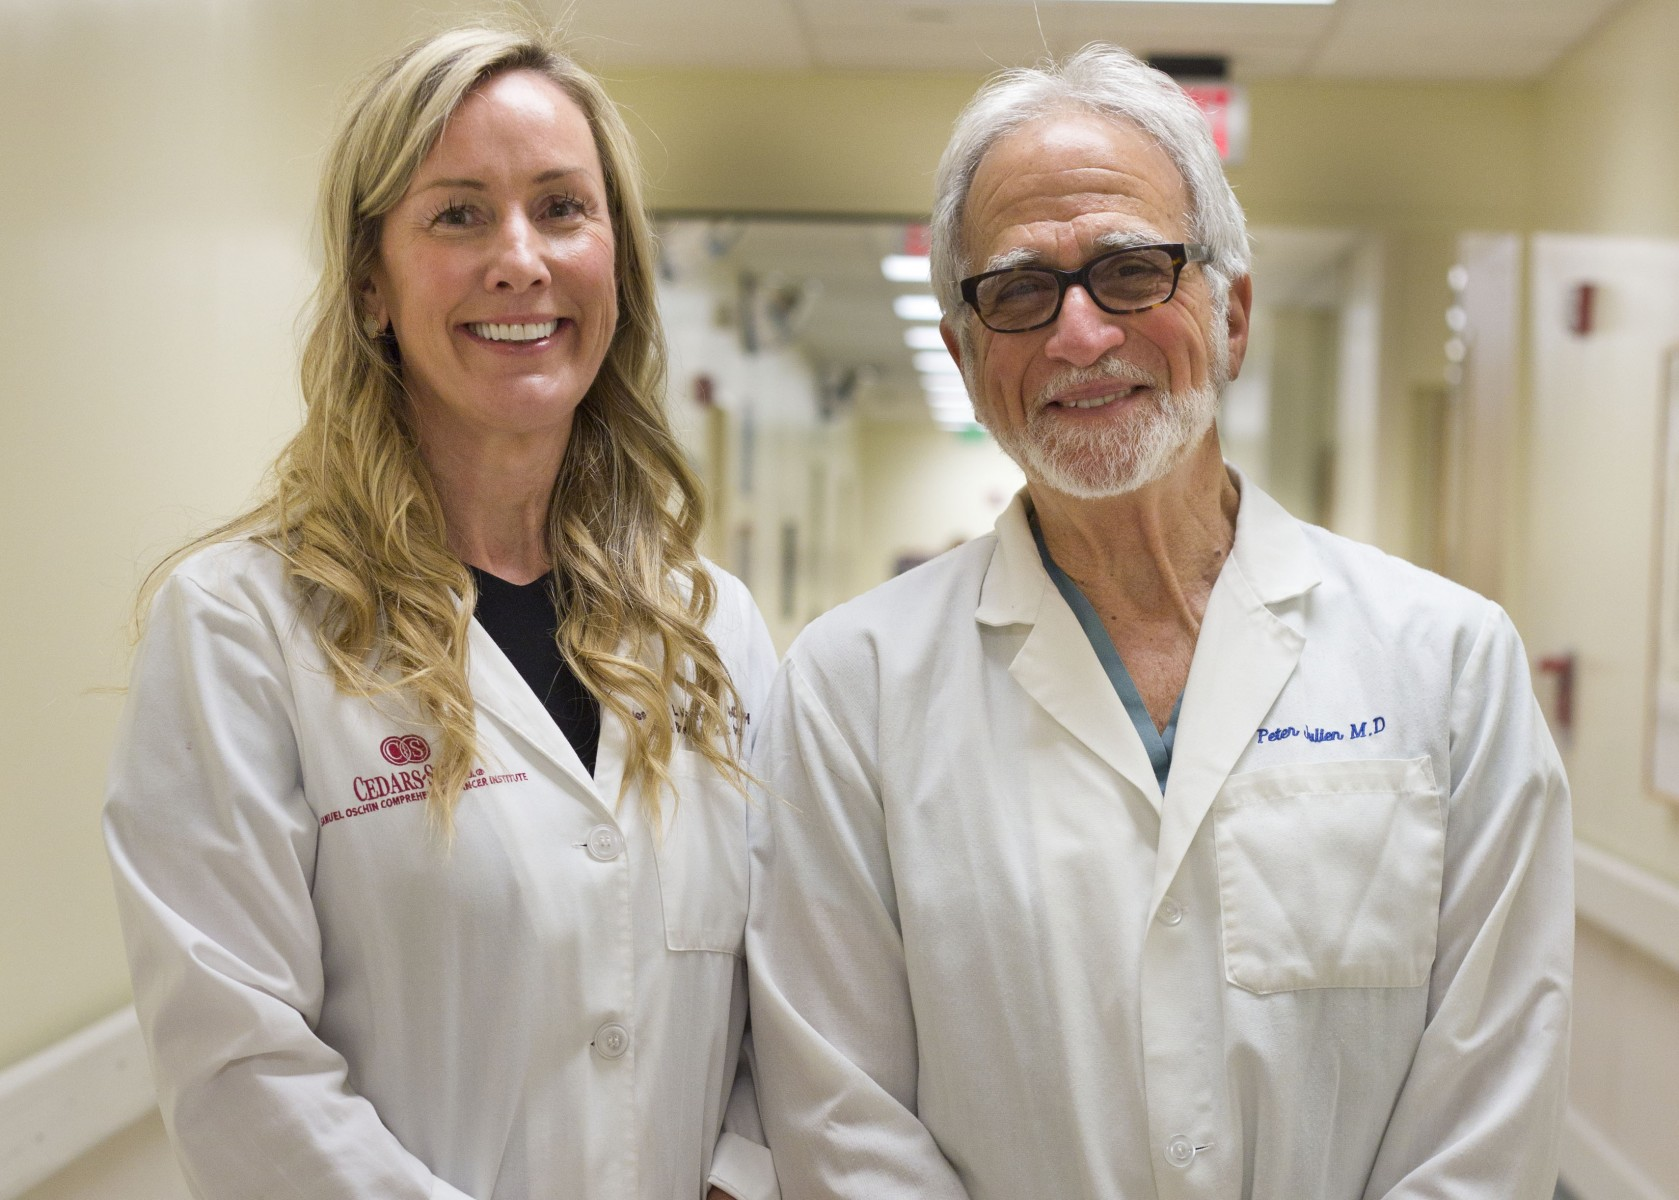 Heather McArthur, MD, and Peter J. Julien, MD, are planning studies to test cryotherapy's effectiveness in destroying breast cancer cells. Photo by Cedars-Sinai.